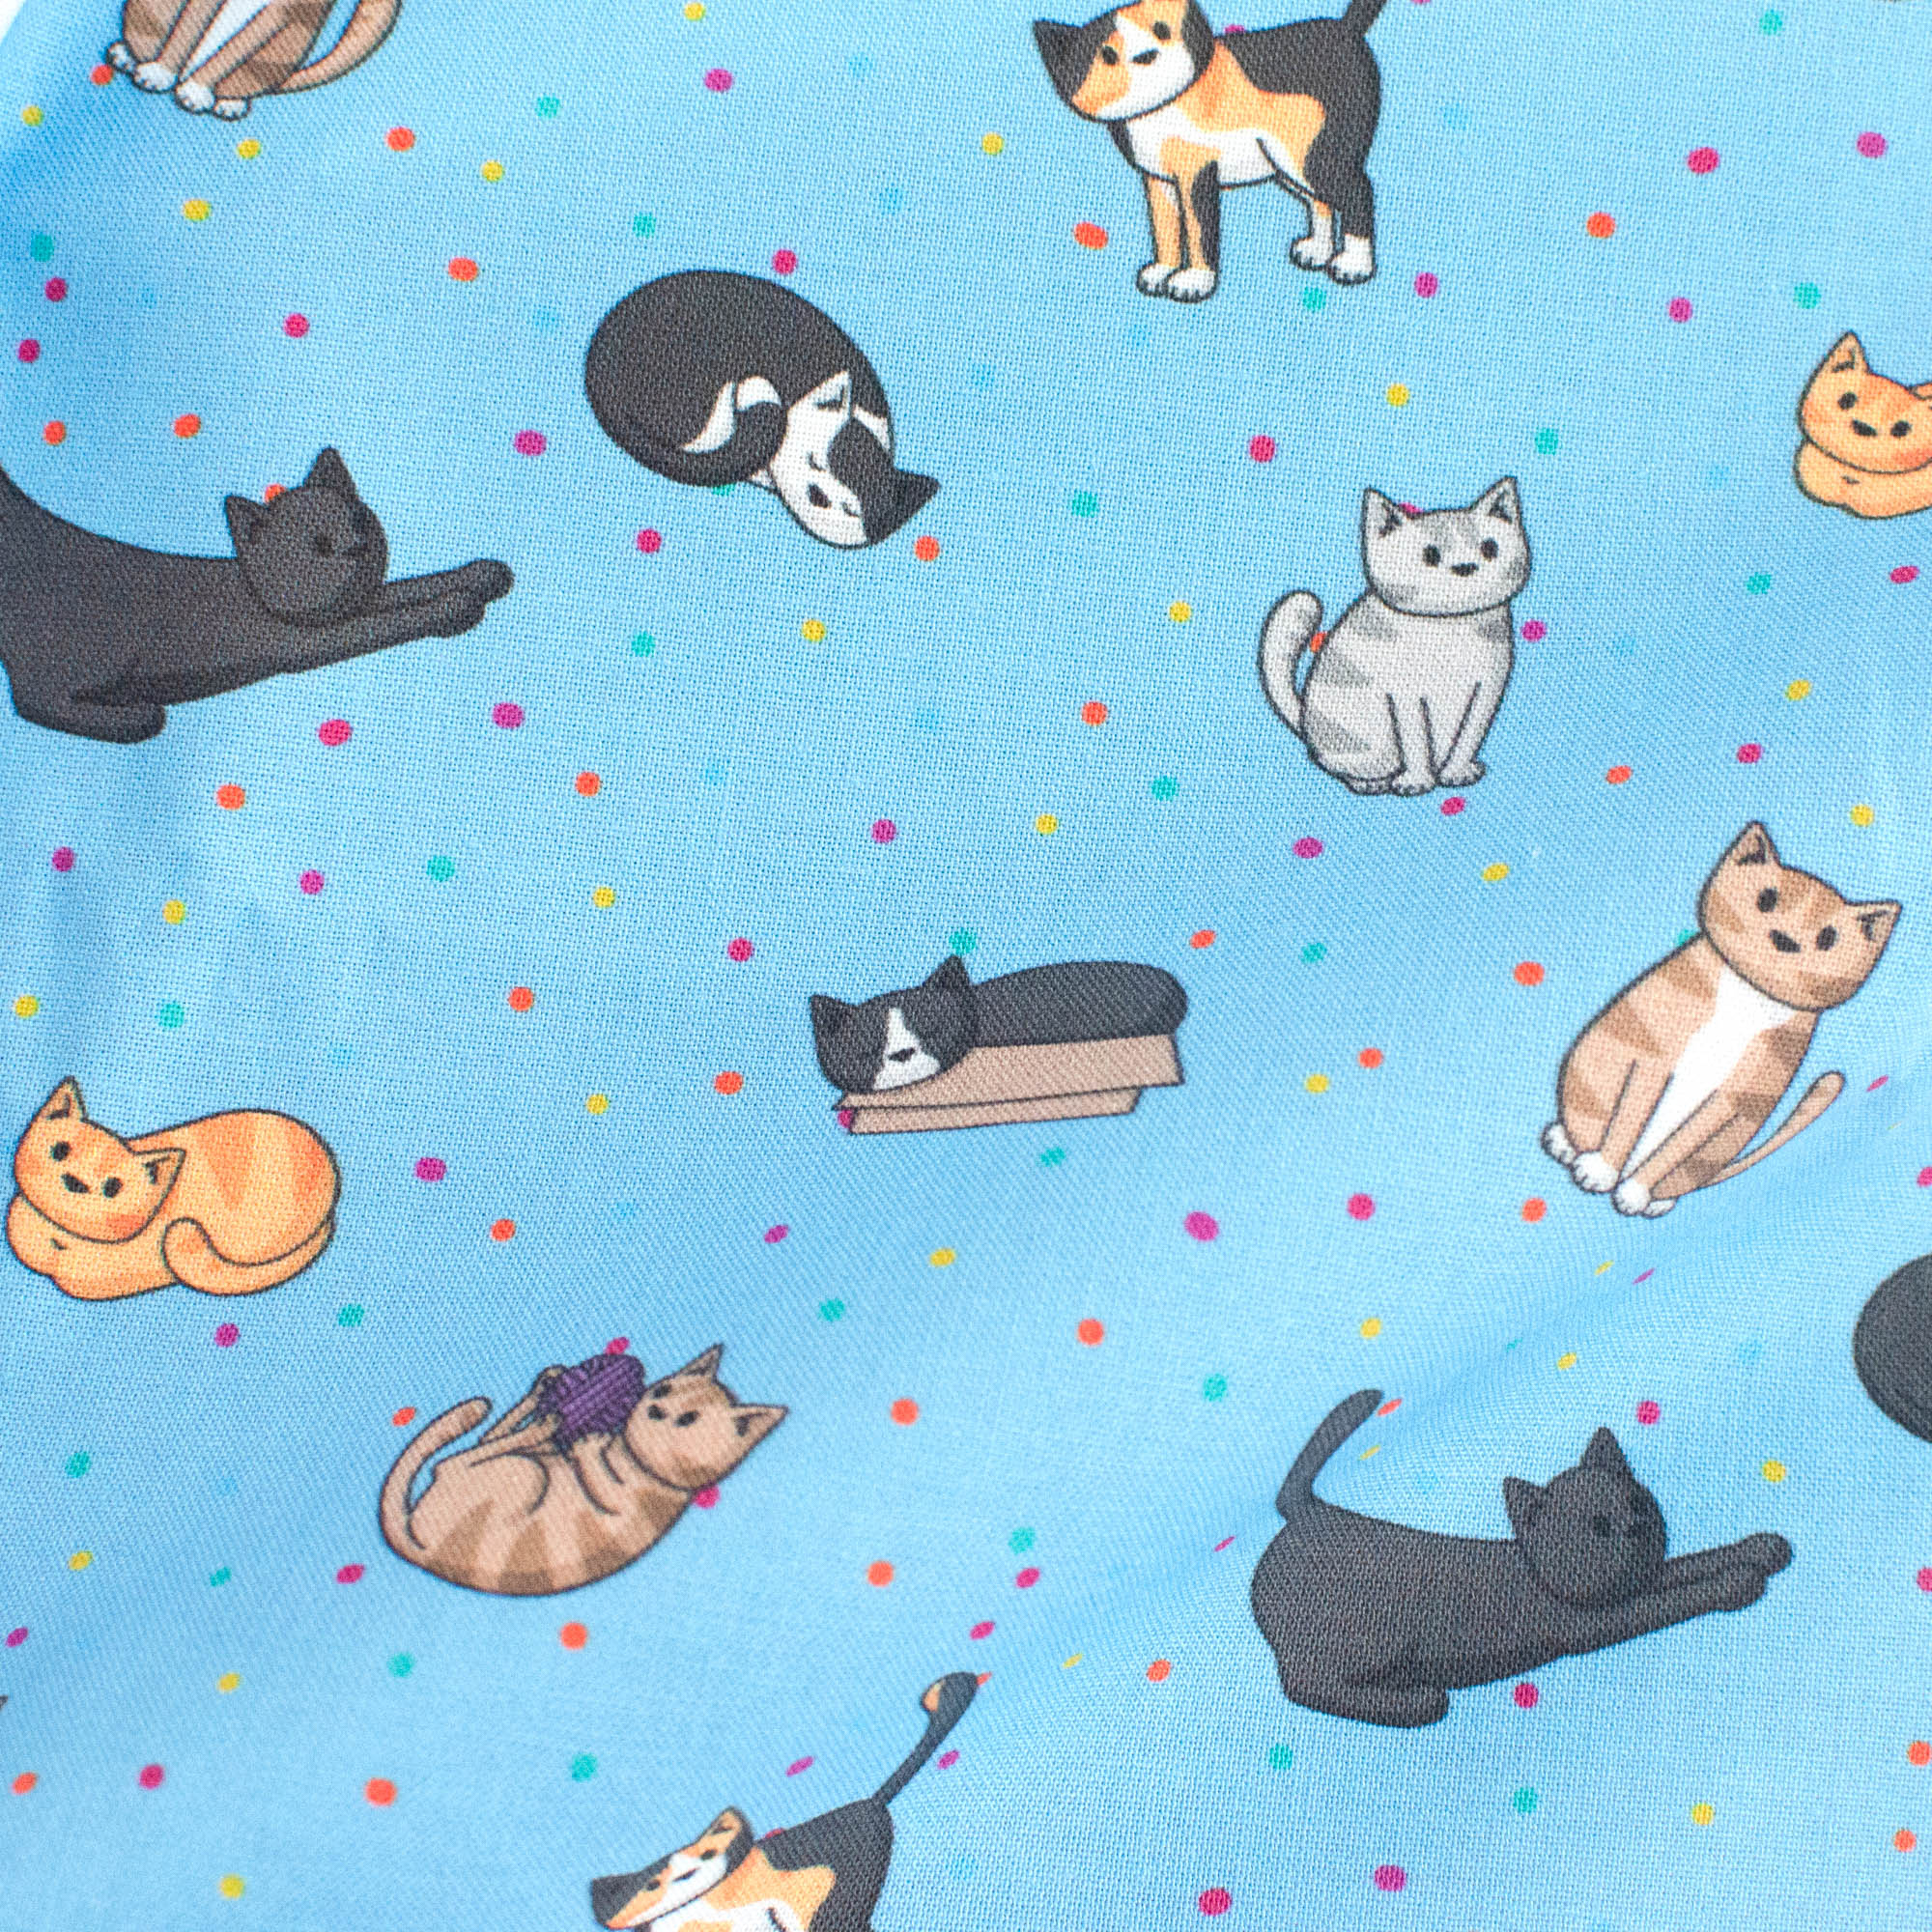 Doodlecats on pink fabric with colourful dots